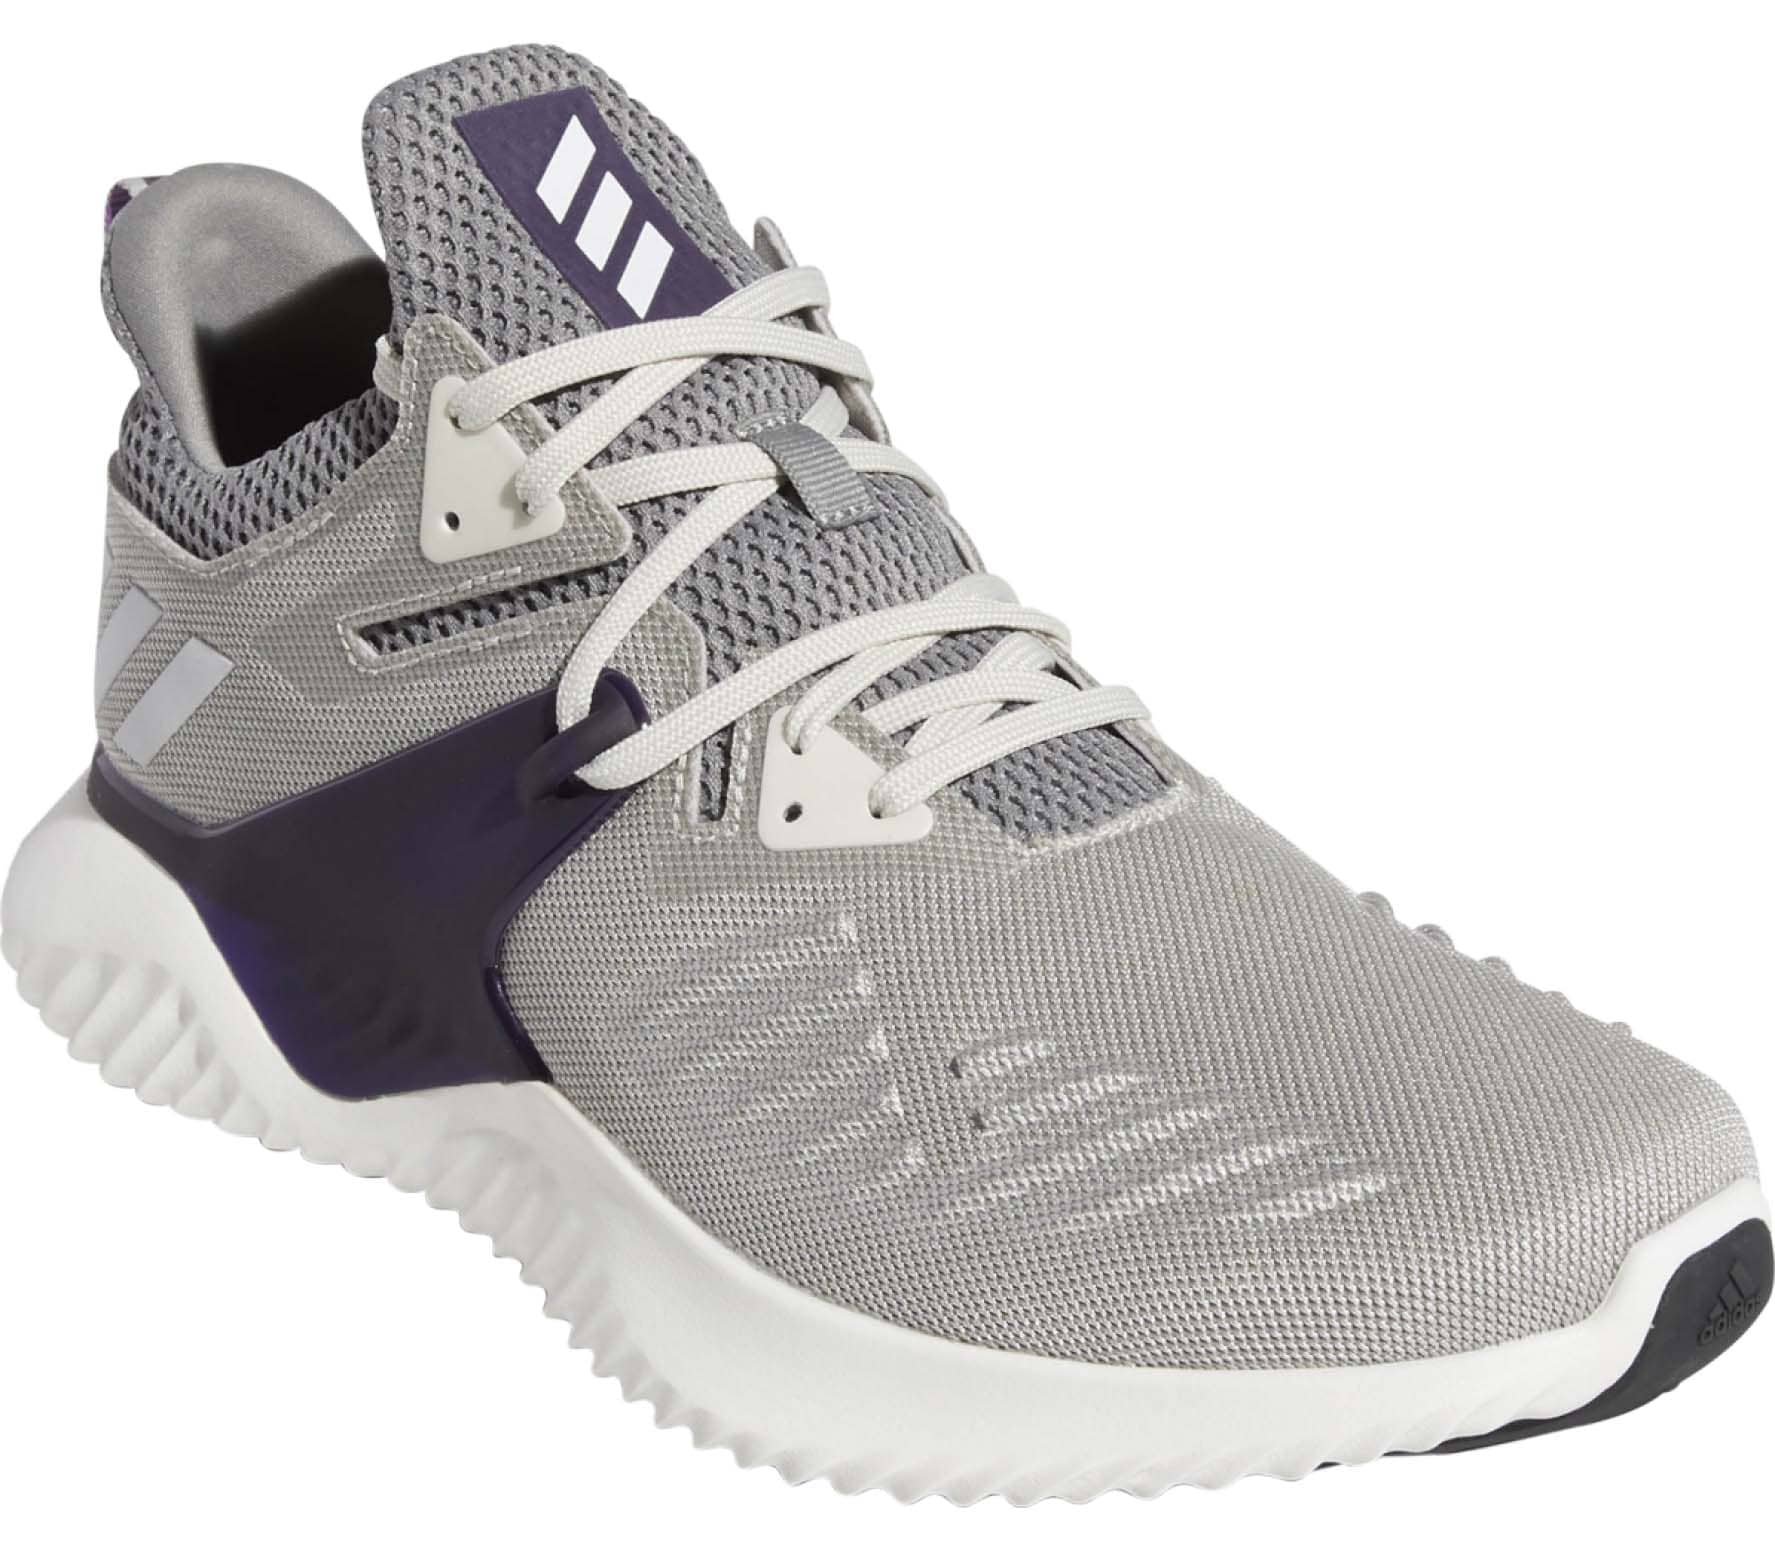 2 Laufschuh Beyond Unisex Alphabounce Silber Adidas wv0mN8On